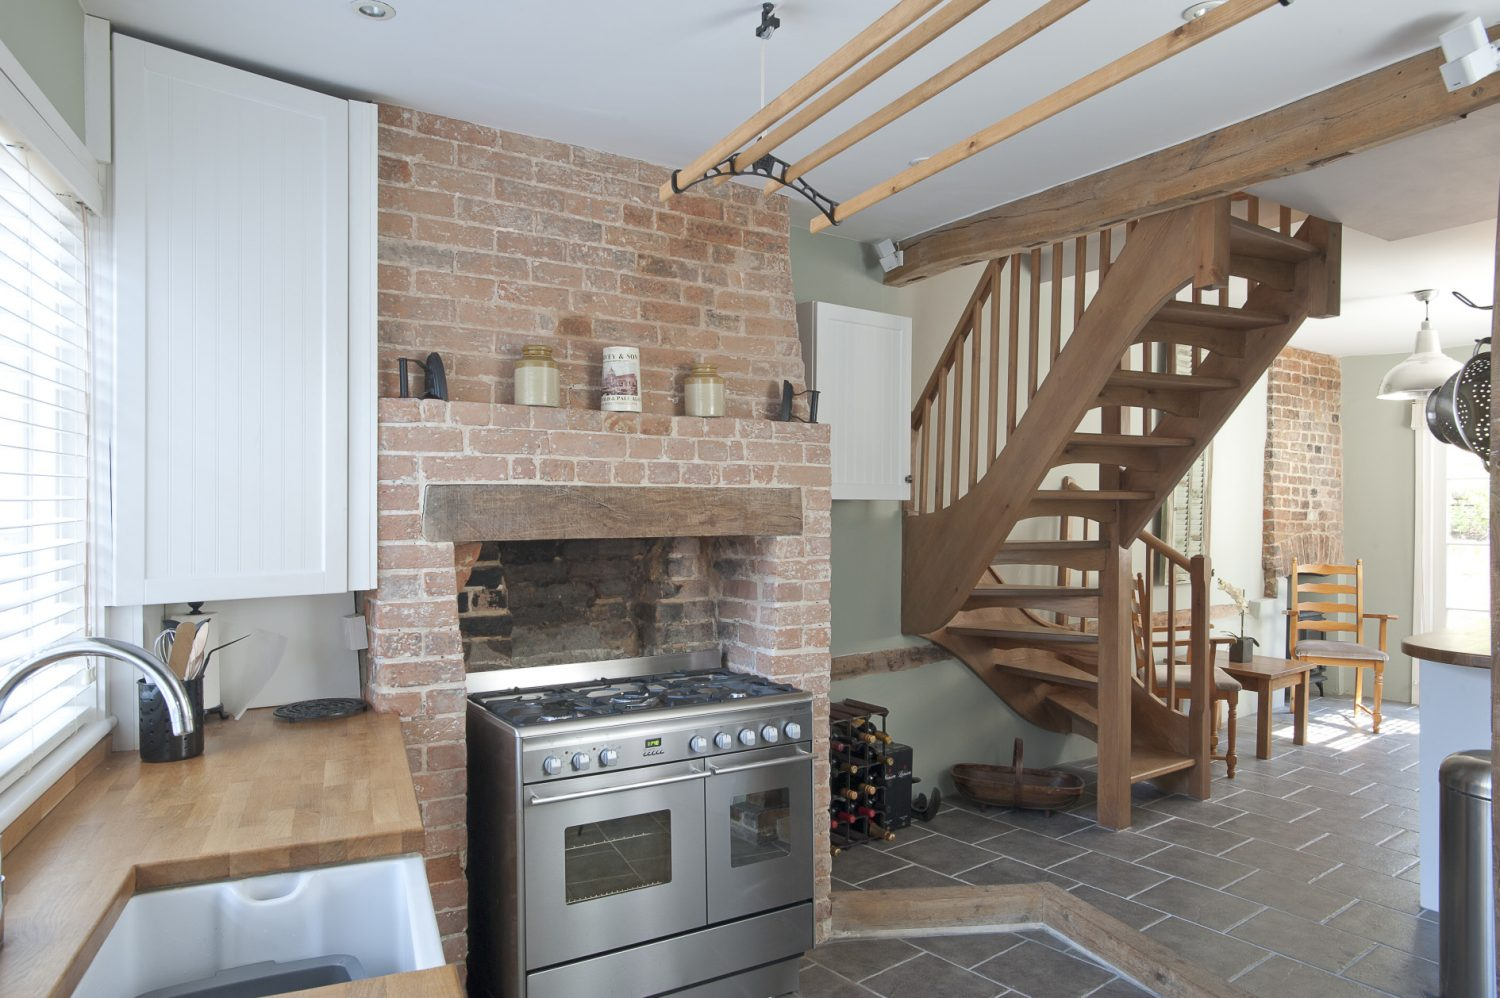 In the kitchen, a stainless steel range cooker has been placed in the wide fireplace